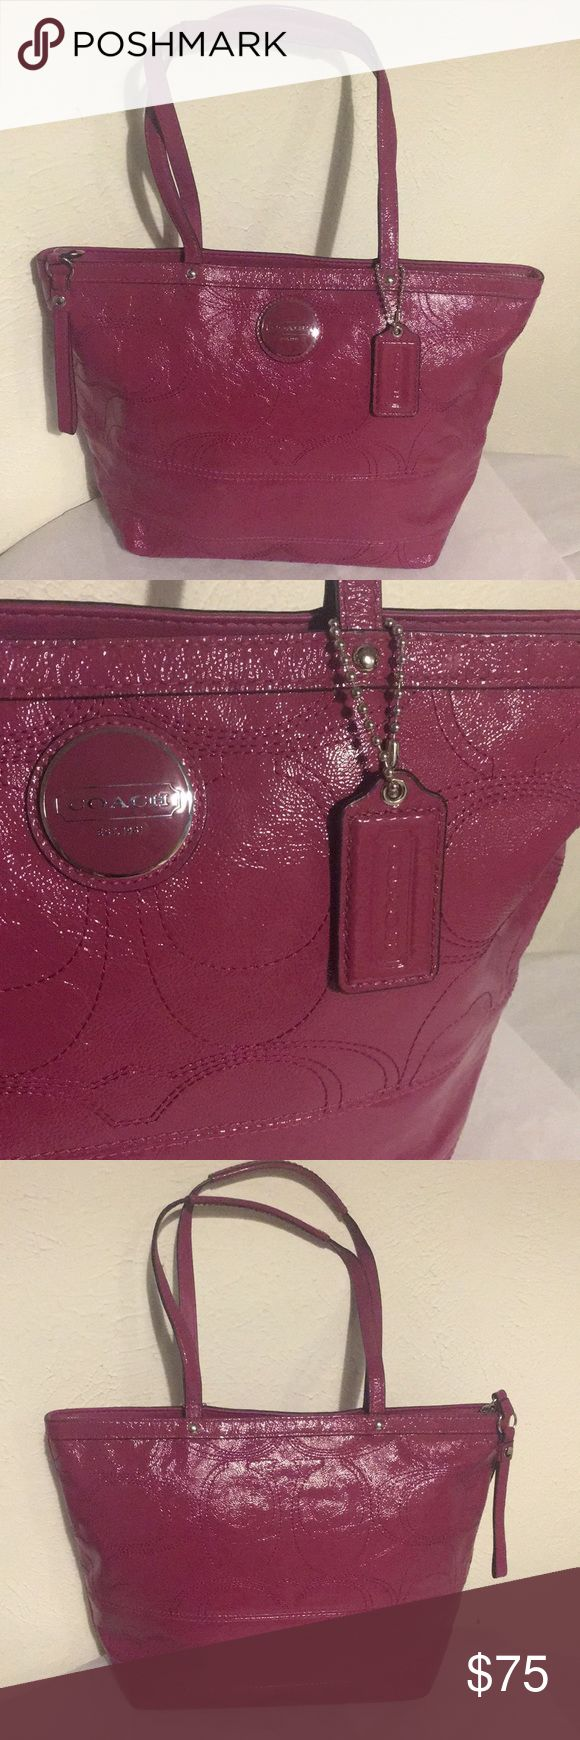 """NWOT Pink Coach Purse NWOT Authentic pink Coach purse in new condition! No scratches or stains, measurements are 10""""x 13.5"""" with a 9"""" handle drop overall in extremely new condition, open to offers! Coach Bags Shoulder Bags"""